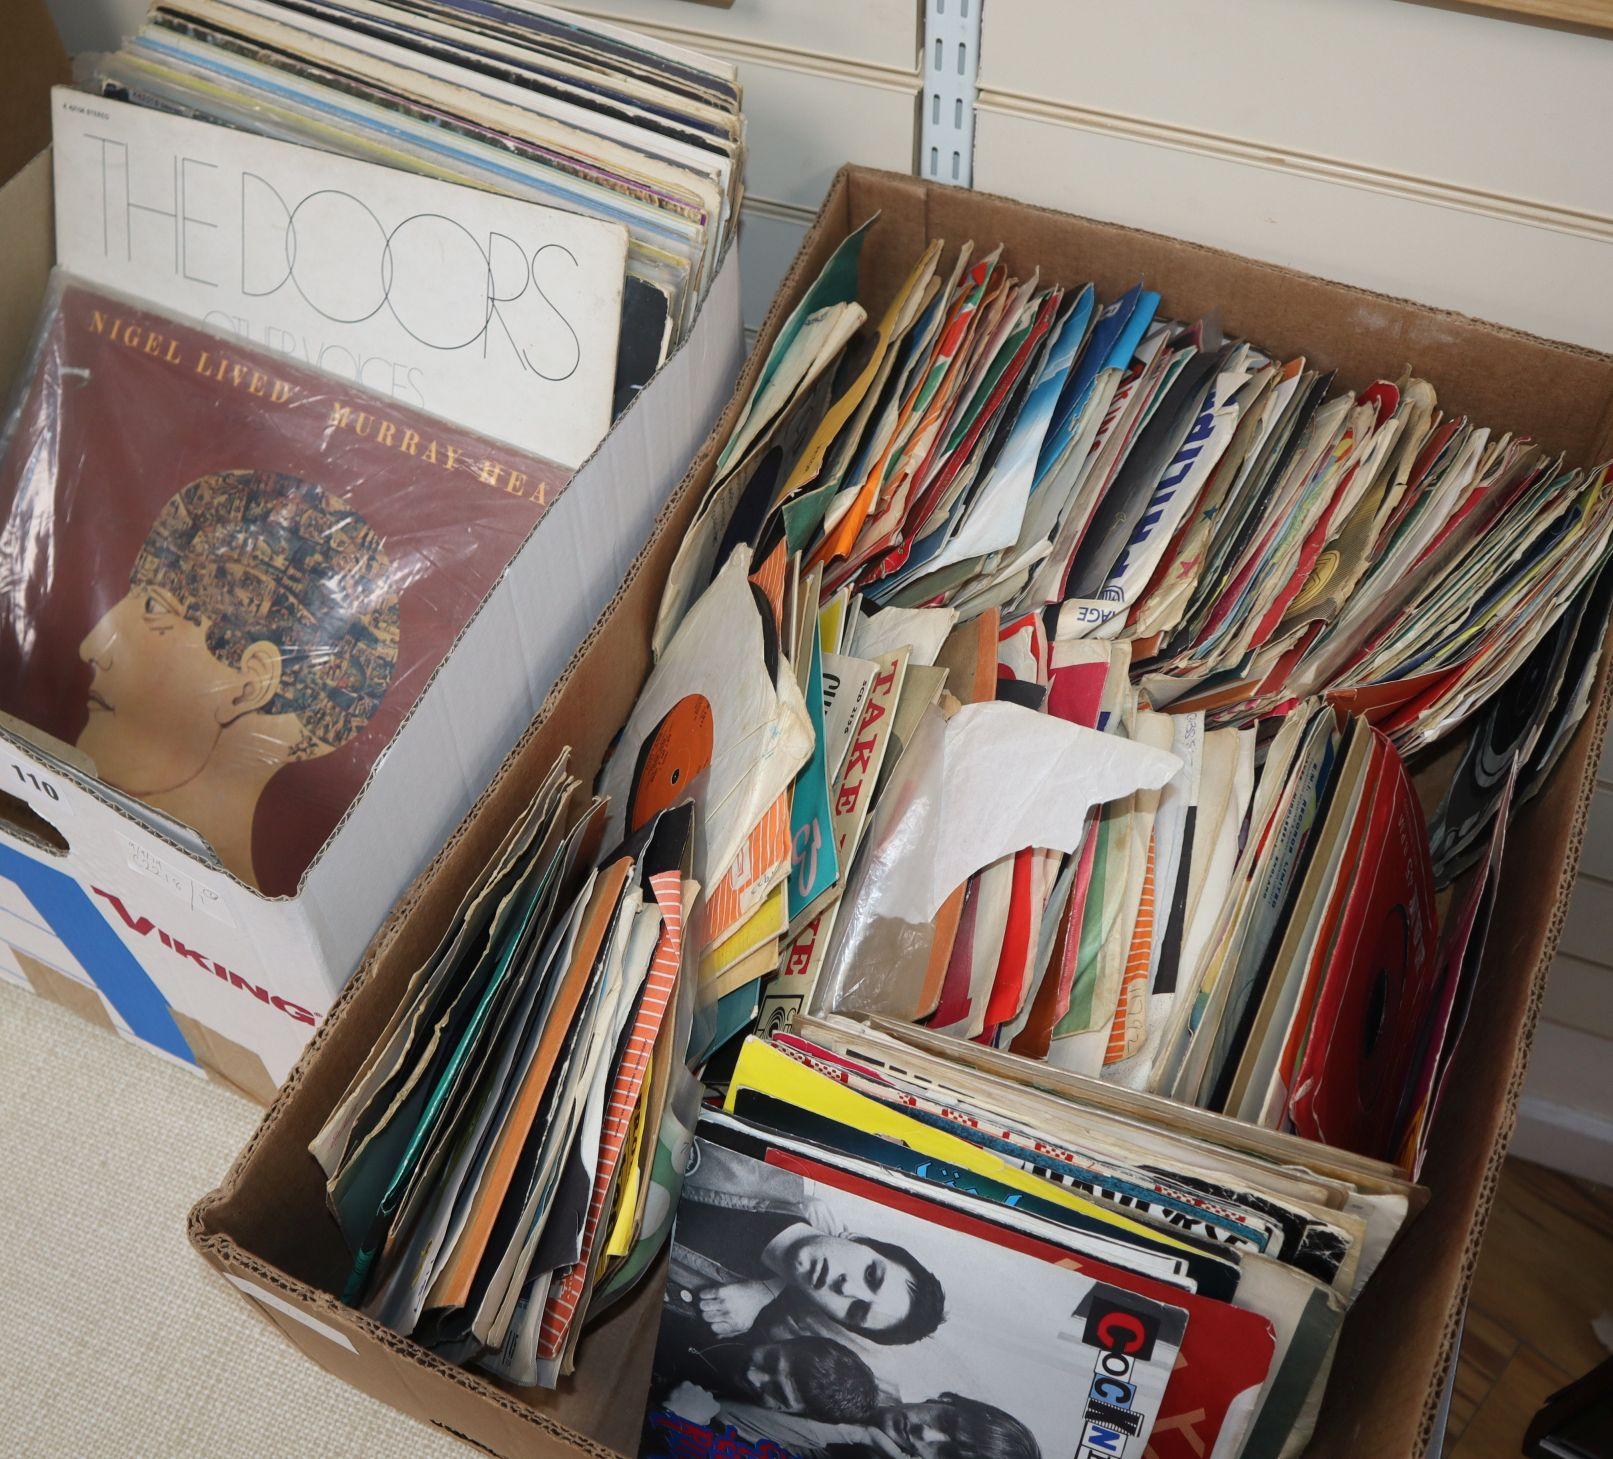 Lot 110 - A collection of 31 psych and rock LPs and large collection of punk and rockabilly singles, to